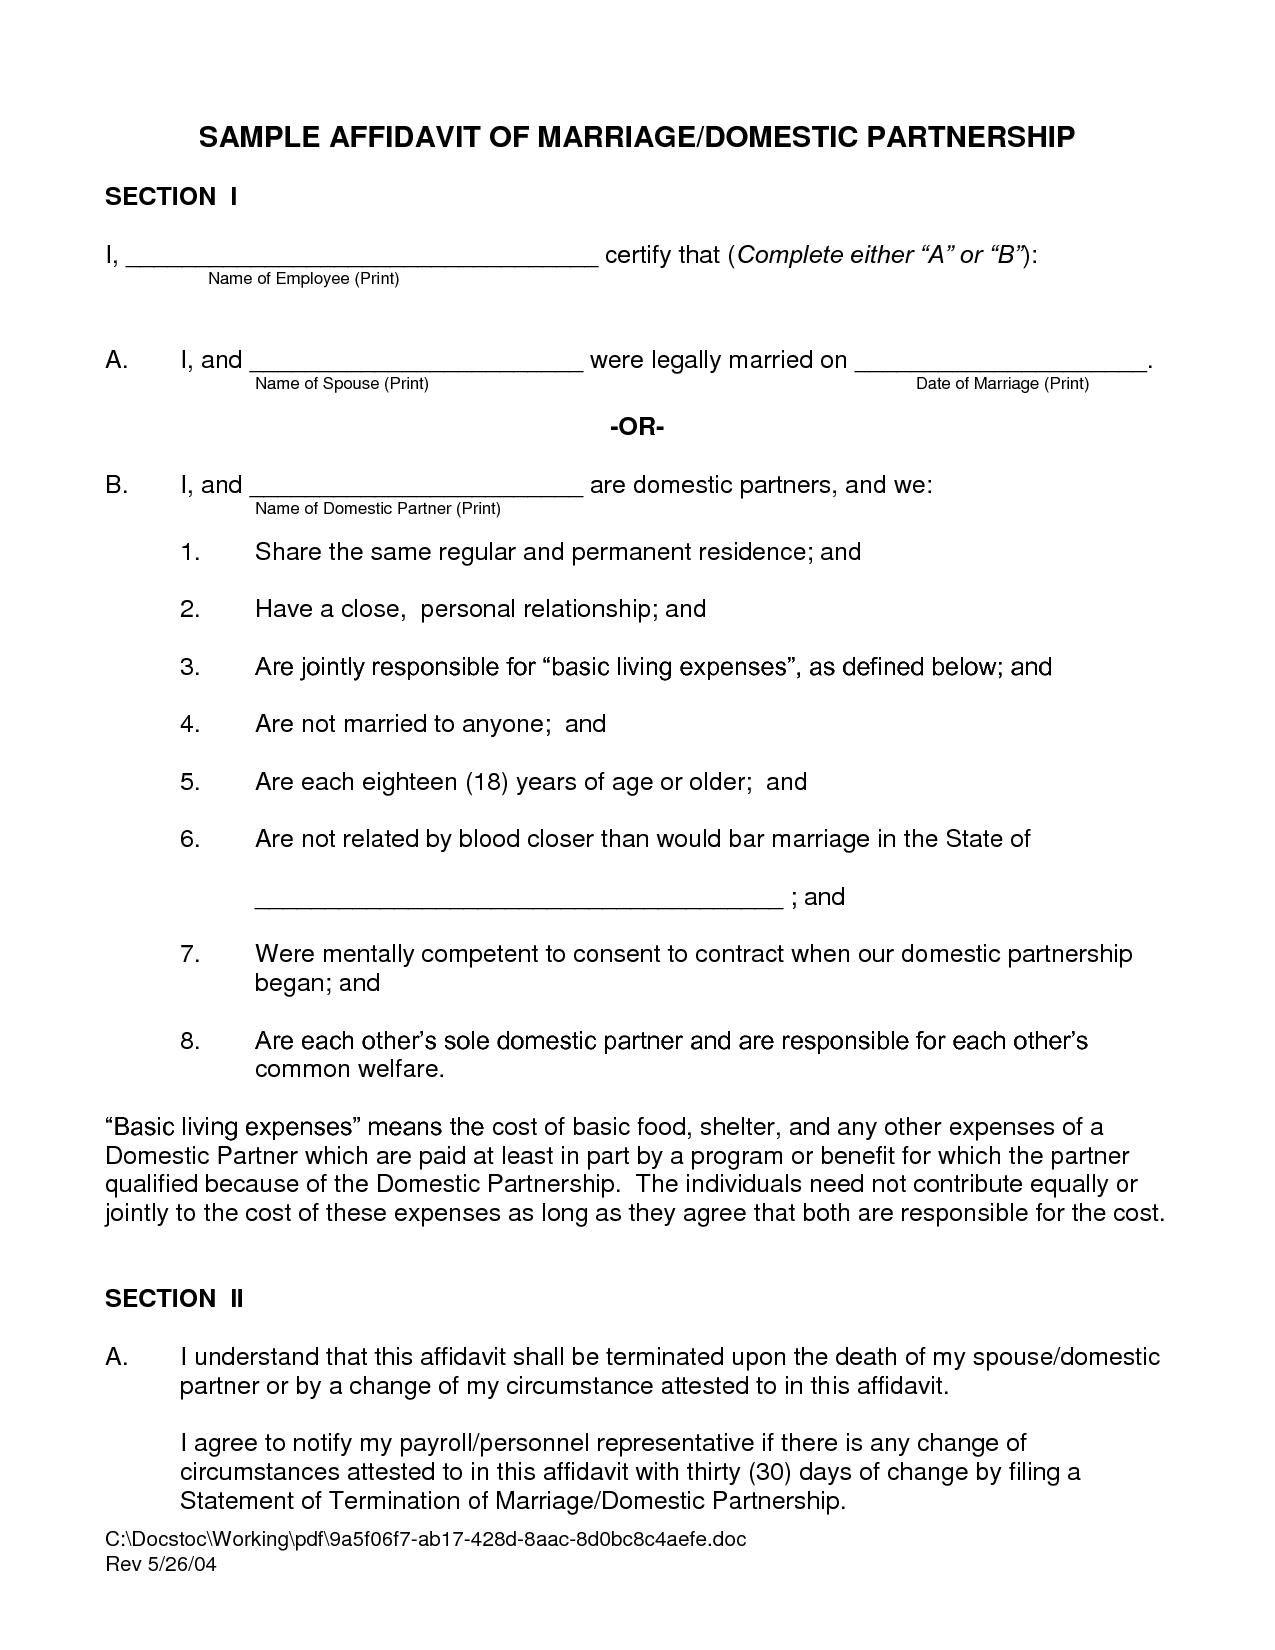 Sample Affidavit Marriage By Iol